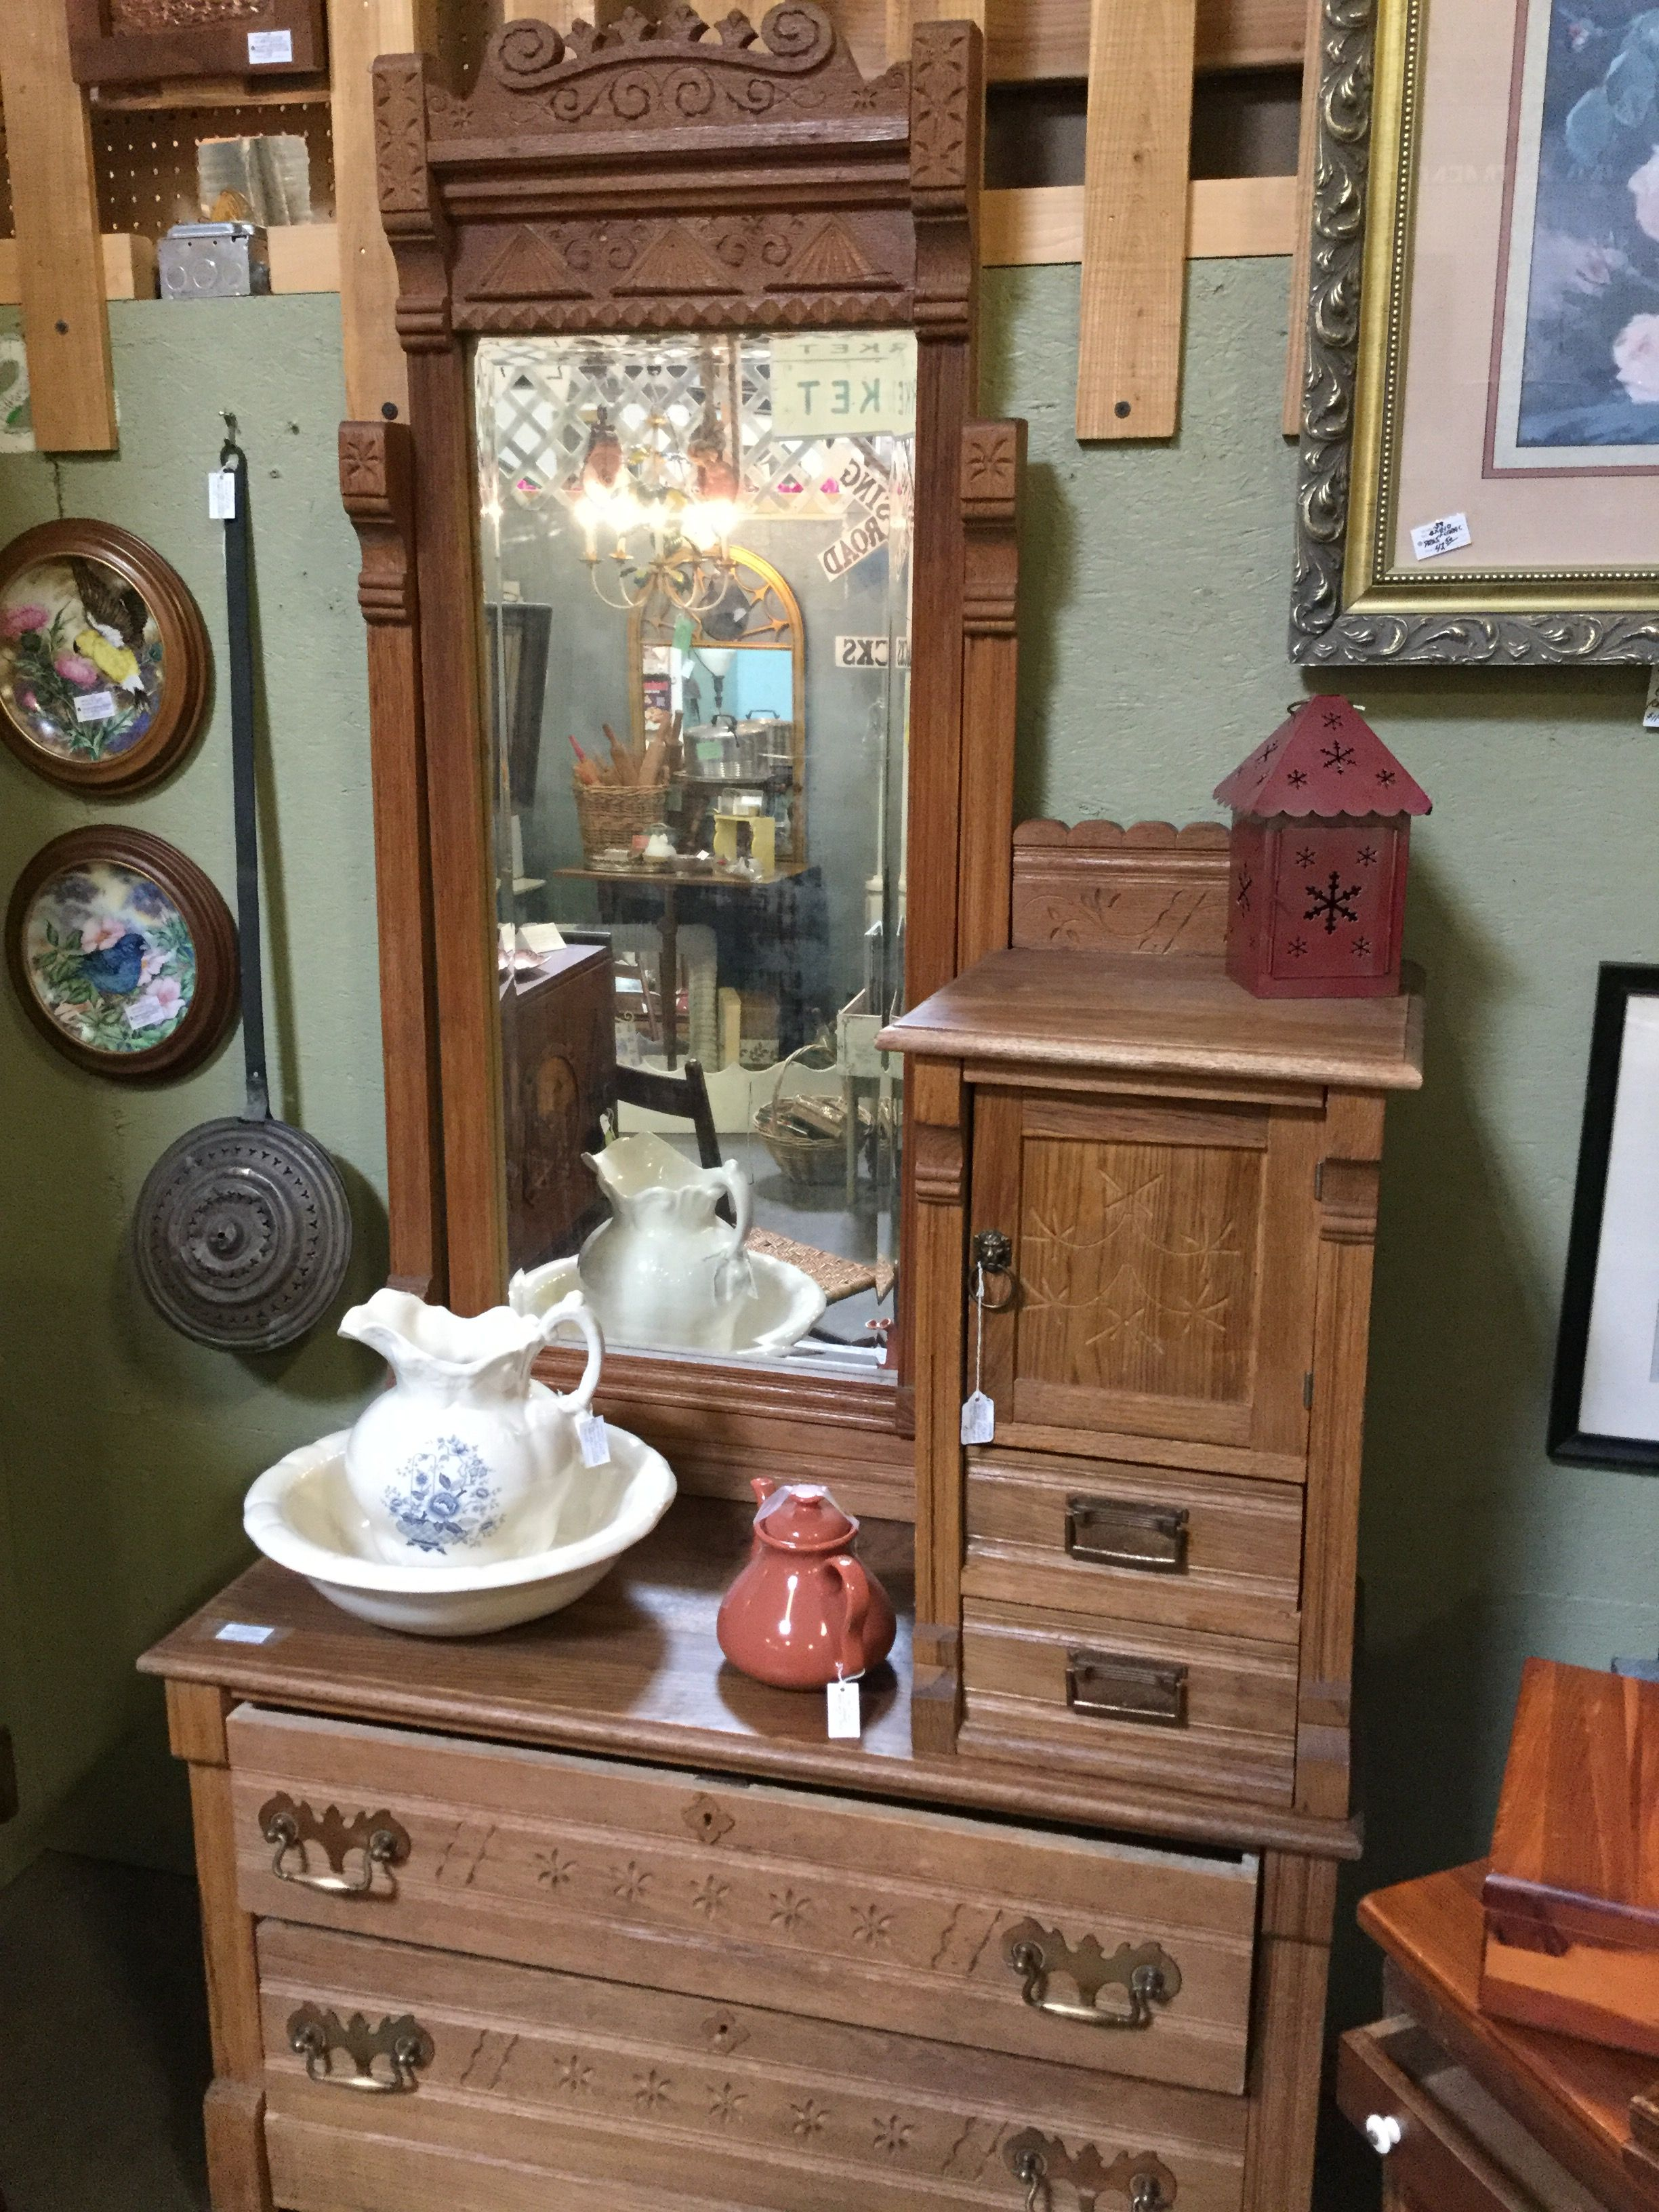 Antique Eastlake Dresser With Mirror, Hat And Glove Storage $275 In Booth 25